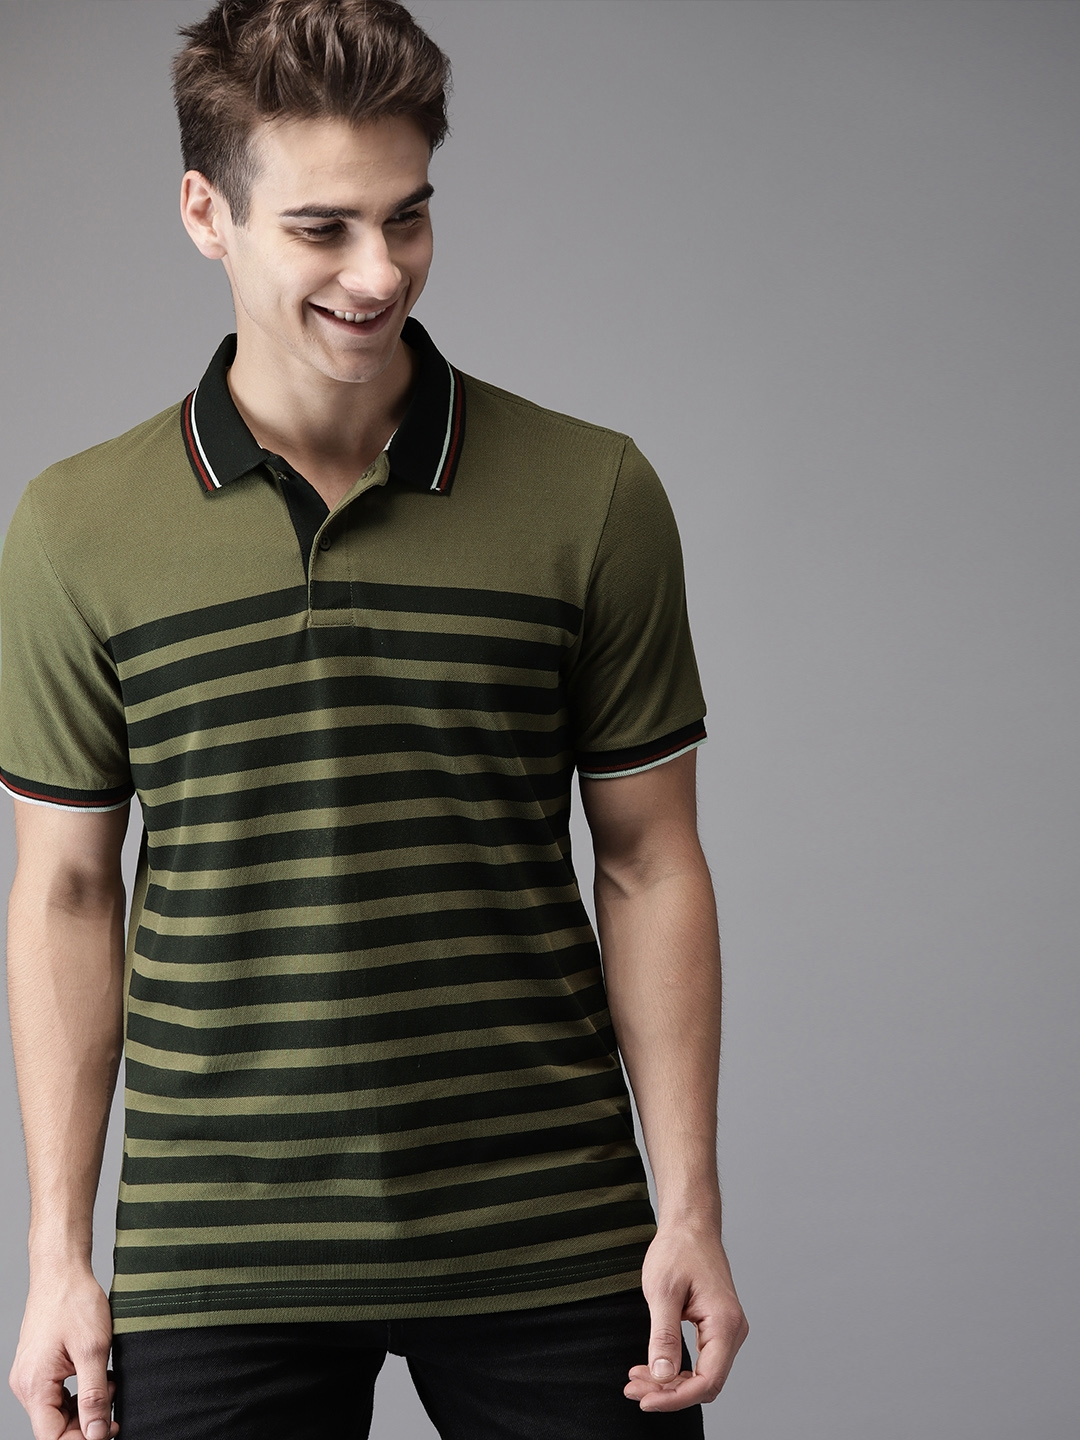 a1dea577b1 Buy HERE&NOW Men Olive Green & Black Striped Polo Collar T Shirt ...